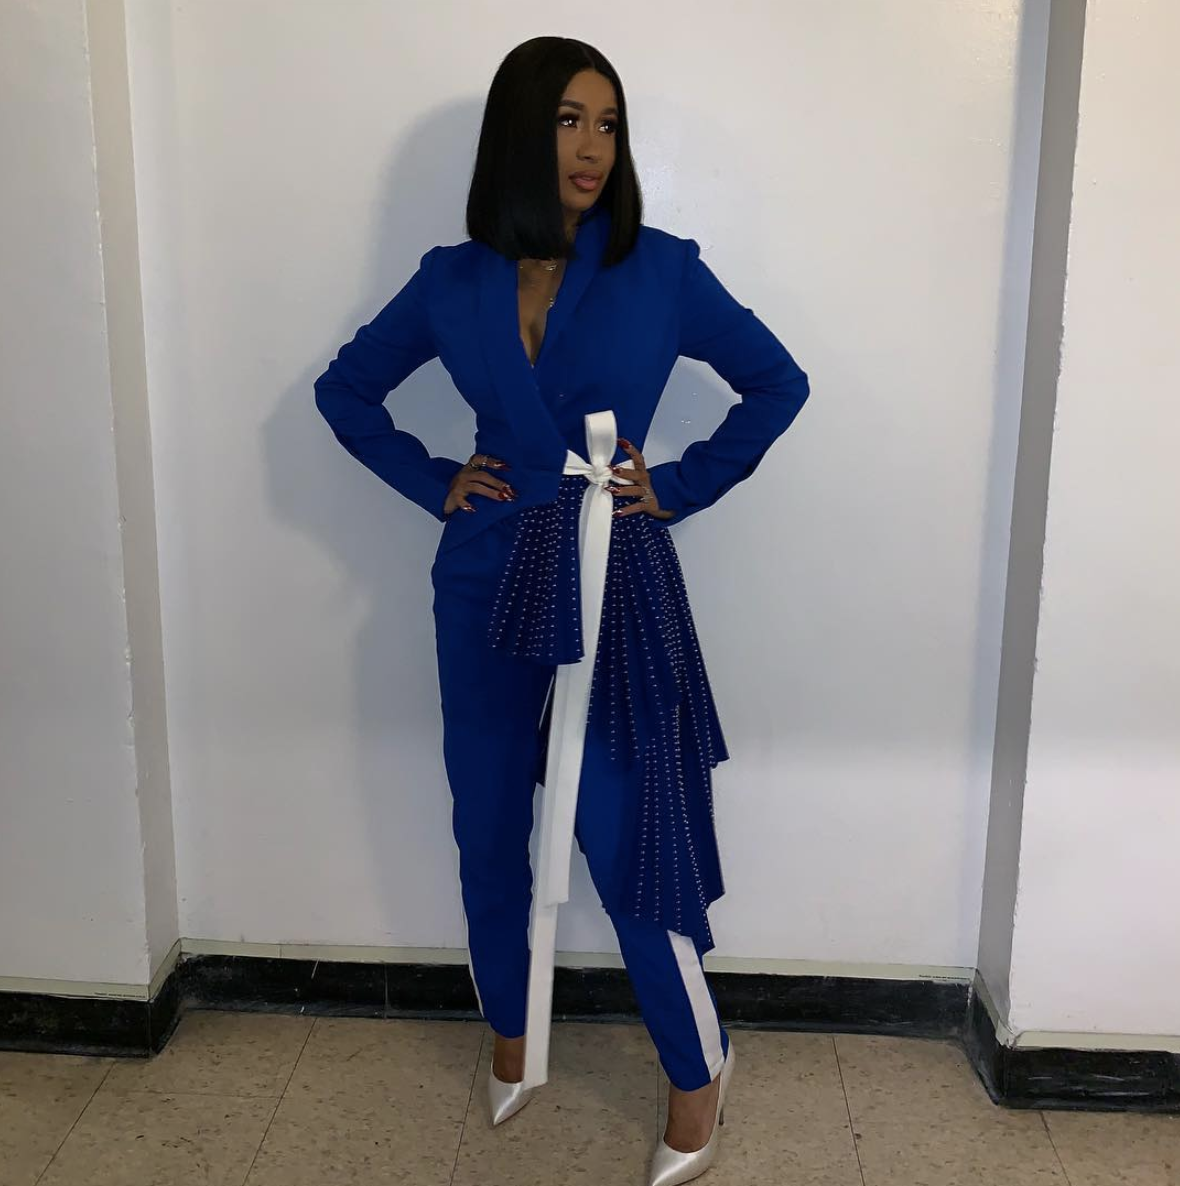 She wore this striking blue pantsuit on  Jimmy Kimmel  and made me wish we had matching checking accounts.